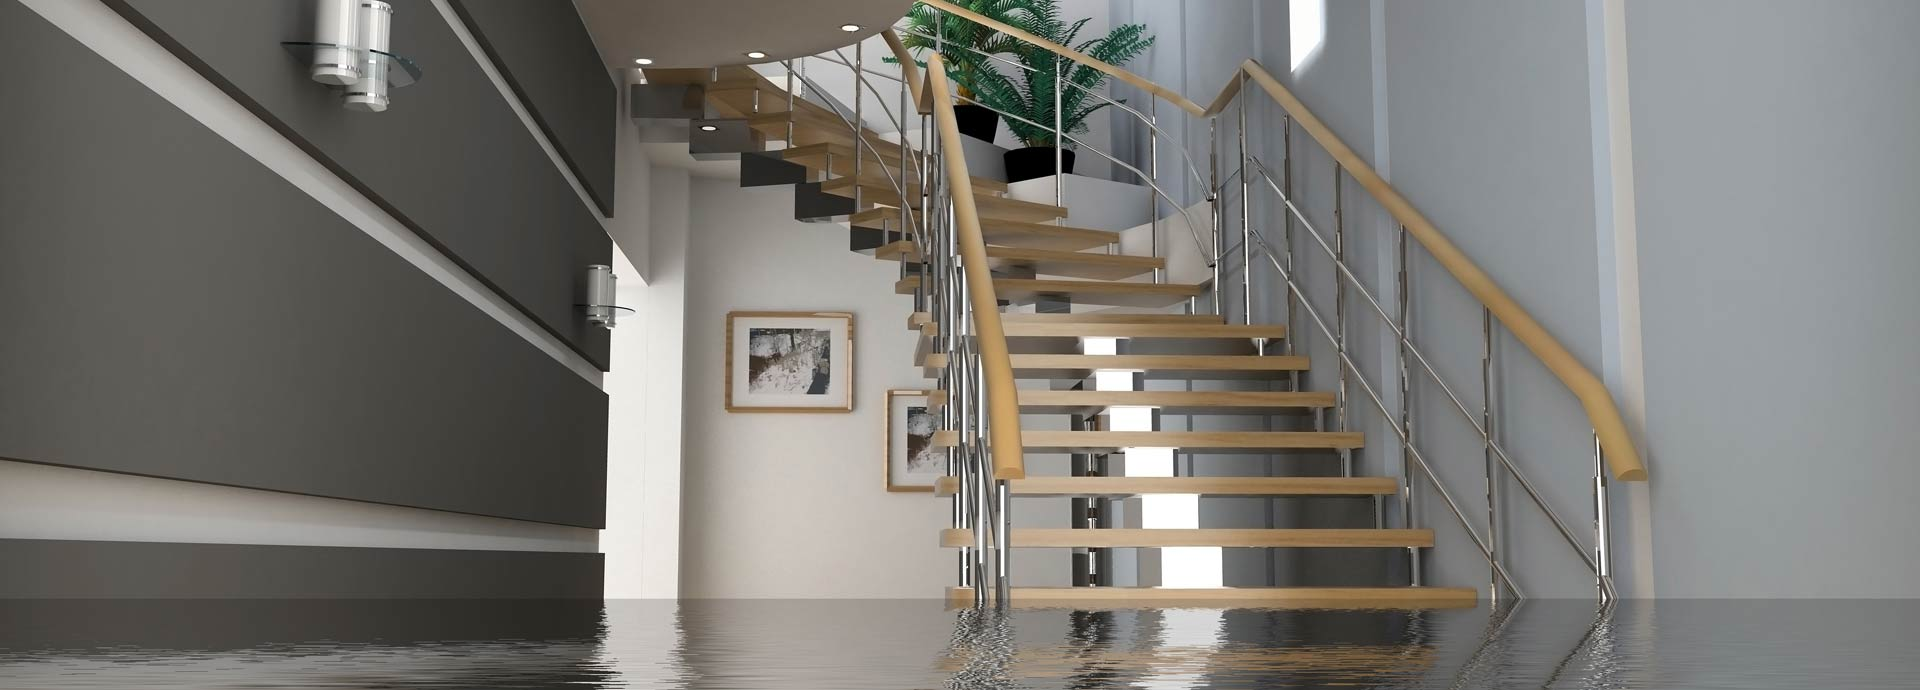 Emergency Water Damage In Houston Texas 1